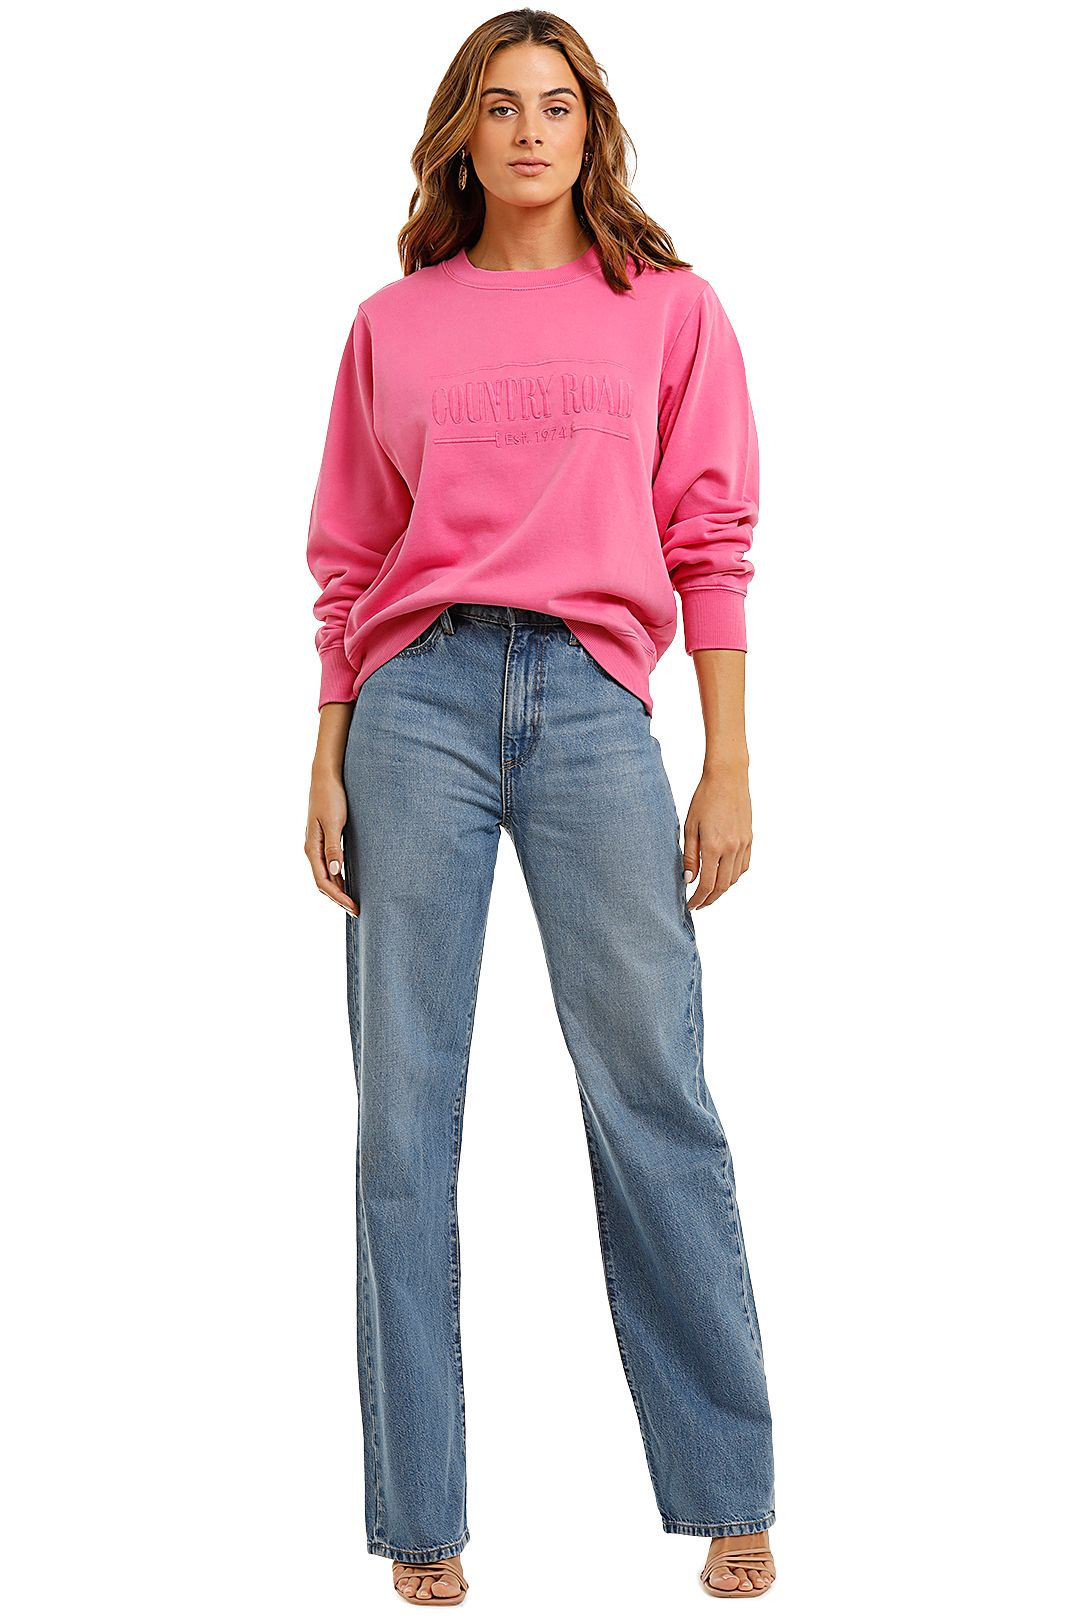 Country Road Heritage Sweat French Rose